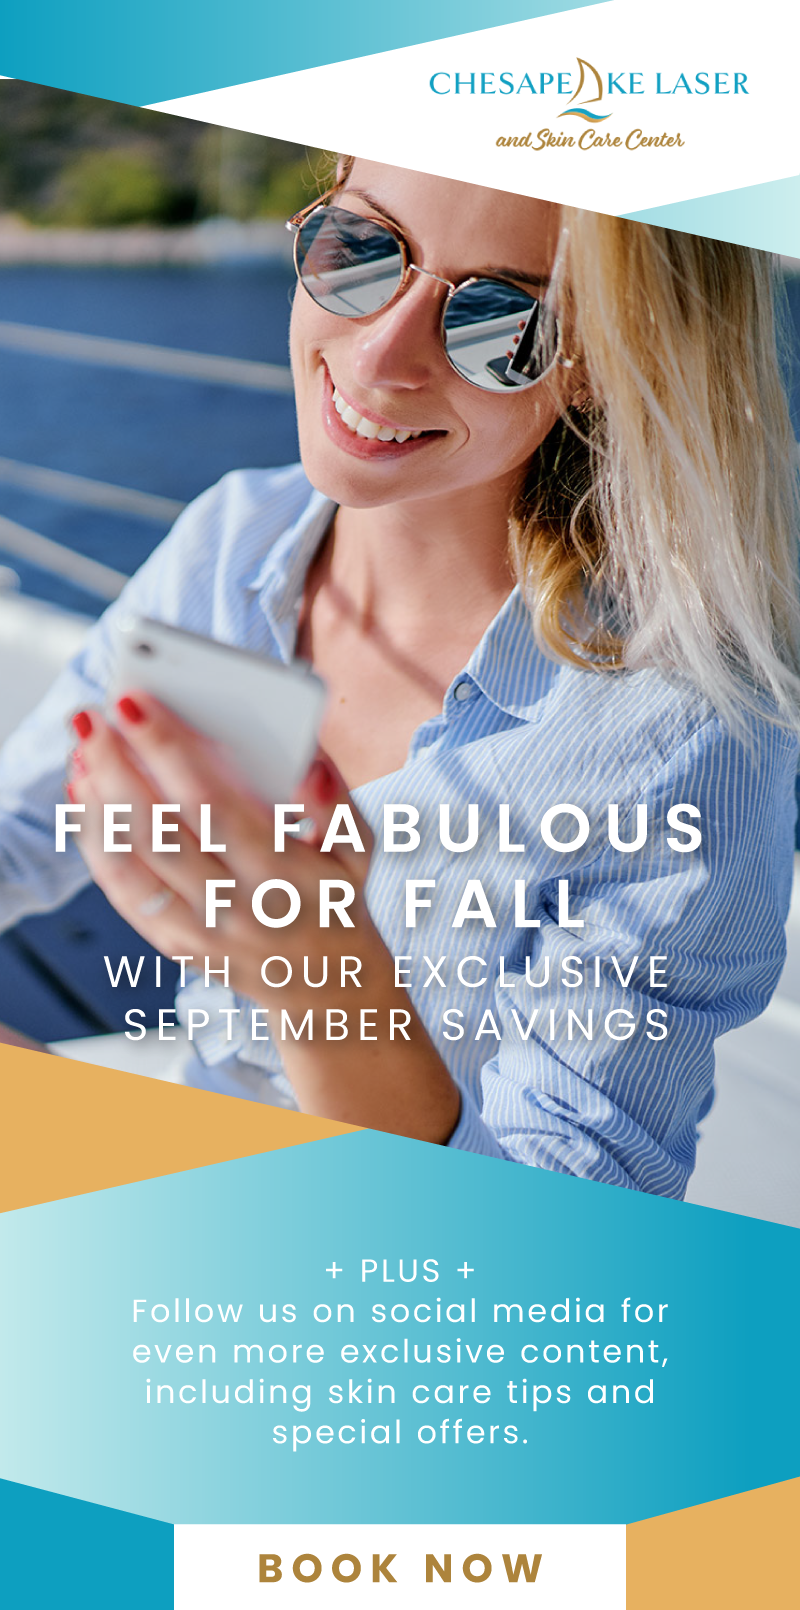 Special Offers for Fall Savings